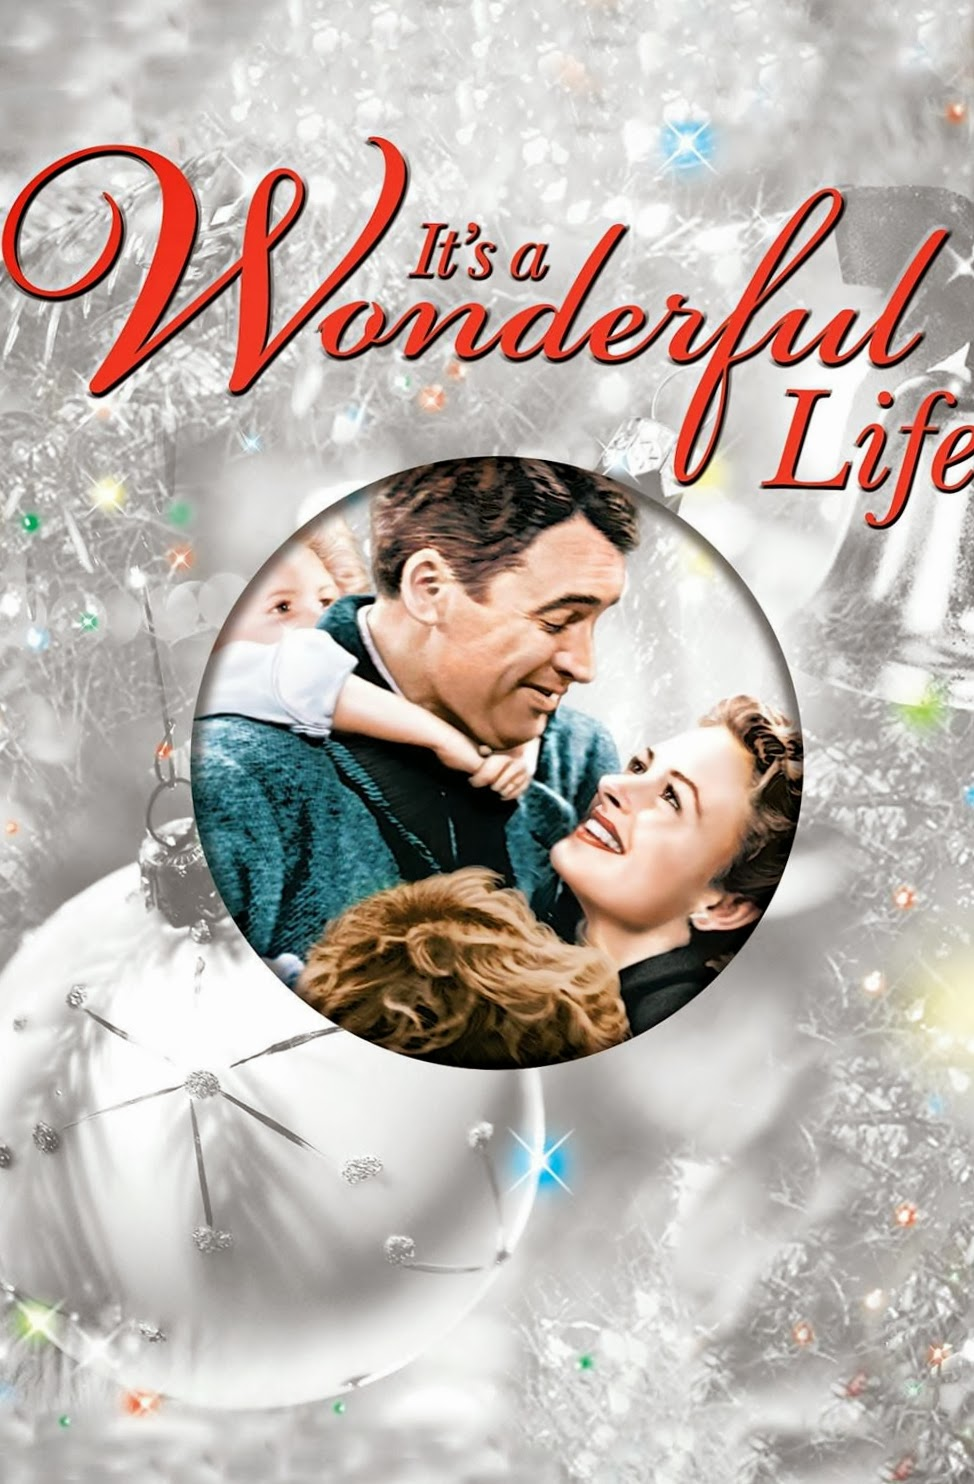 Gotta Go It 39 S A Wonderful Life On Big Screen And Silent Auction At Imax December 5 For 6